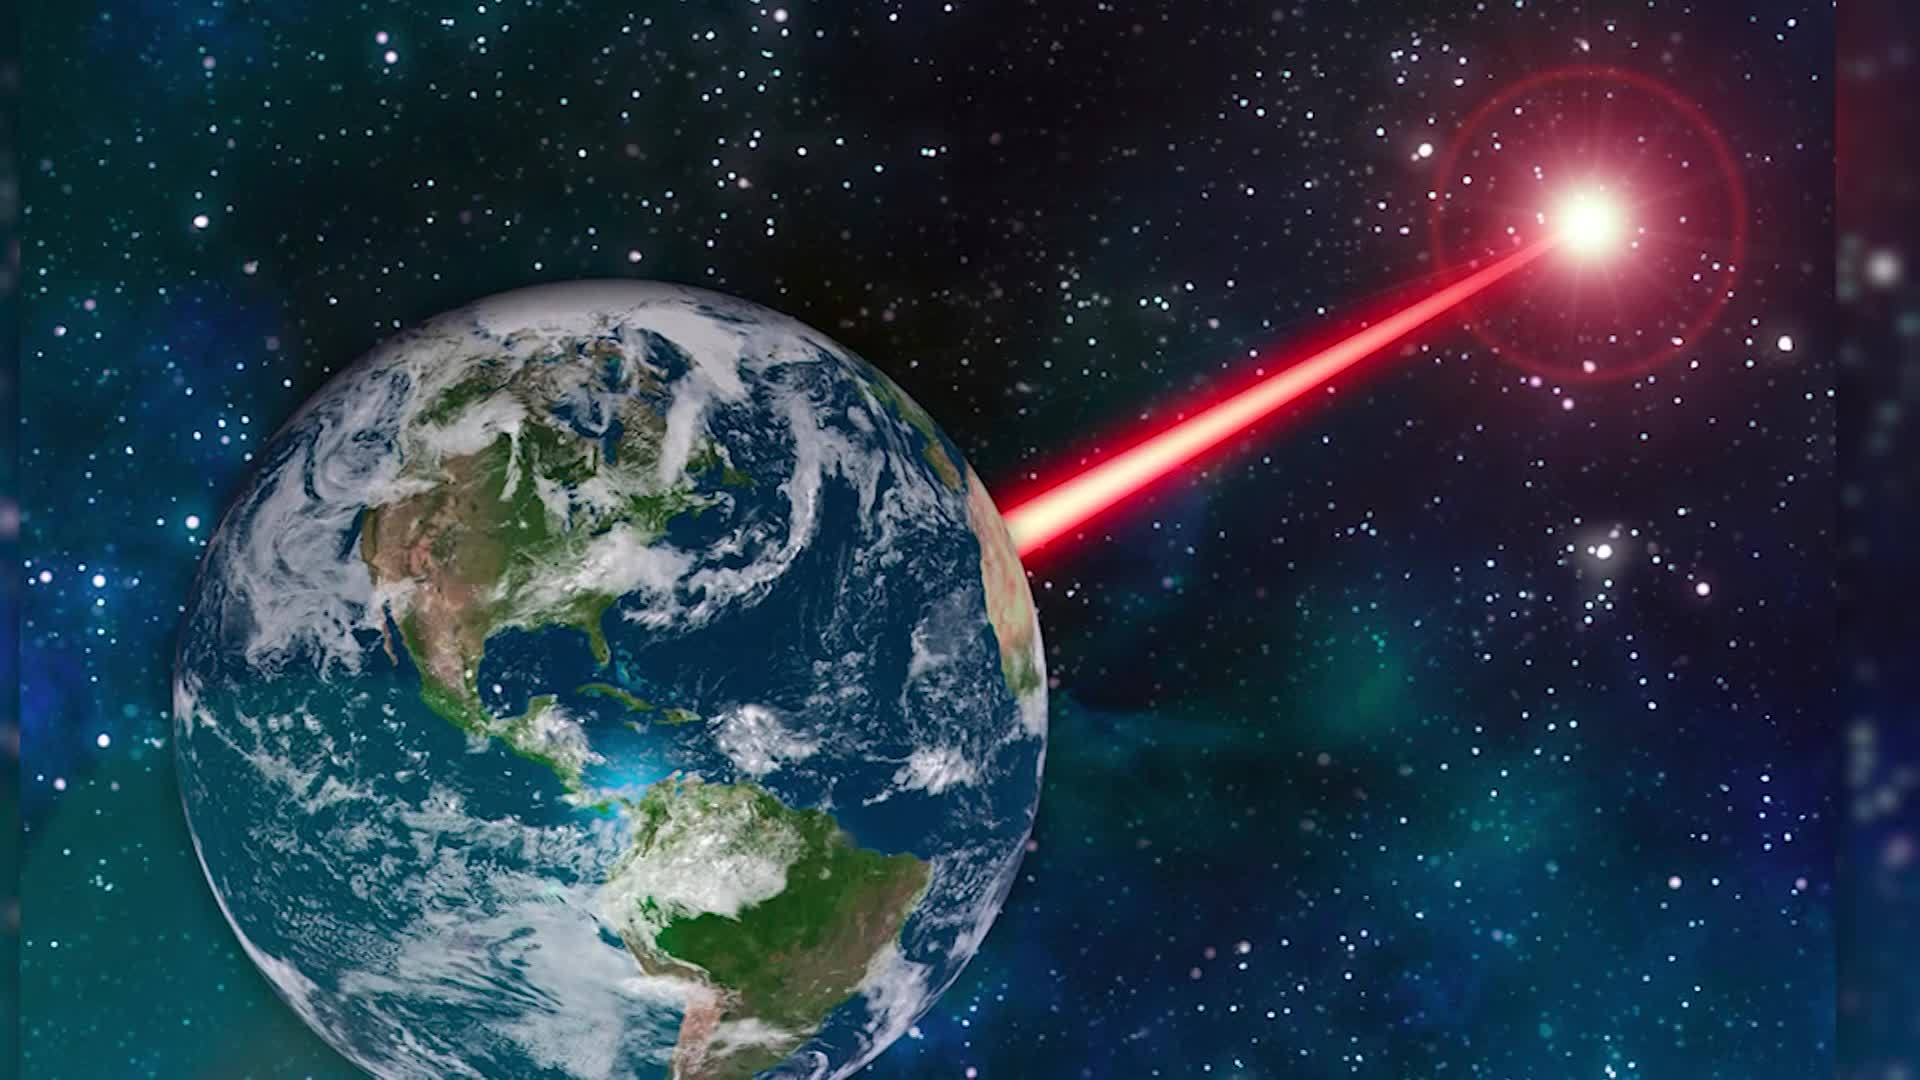 MIT_study_suggests_lasers_could_attract__0_20181108151913